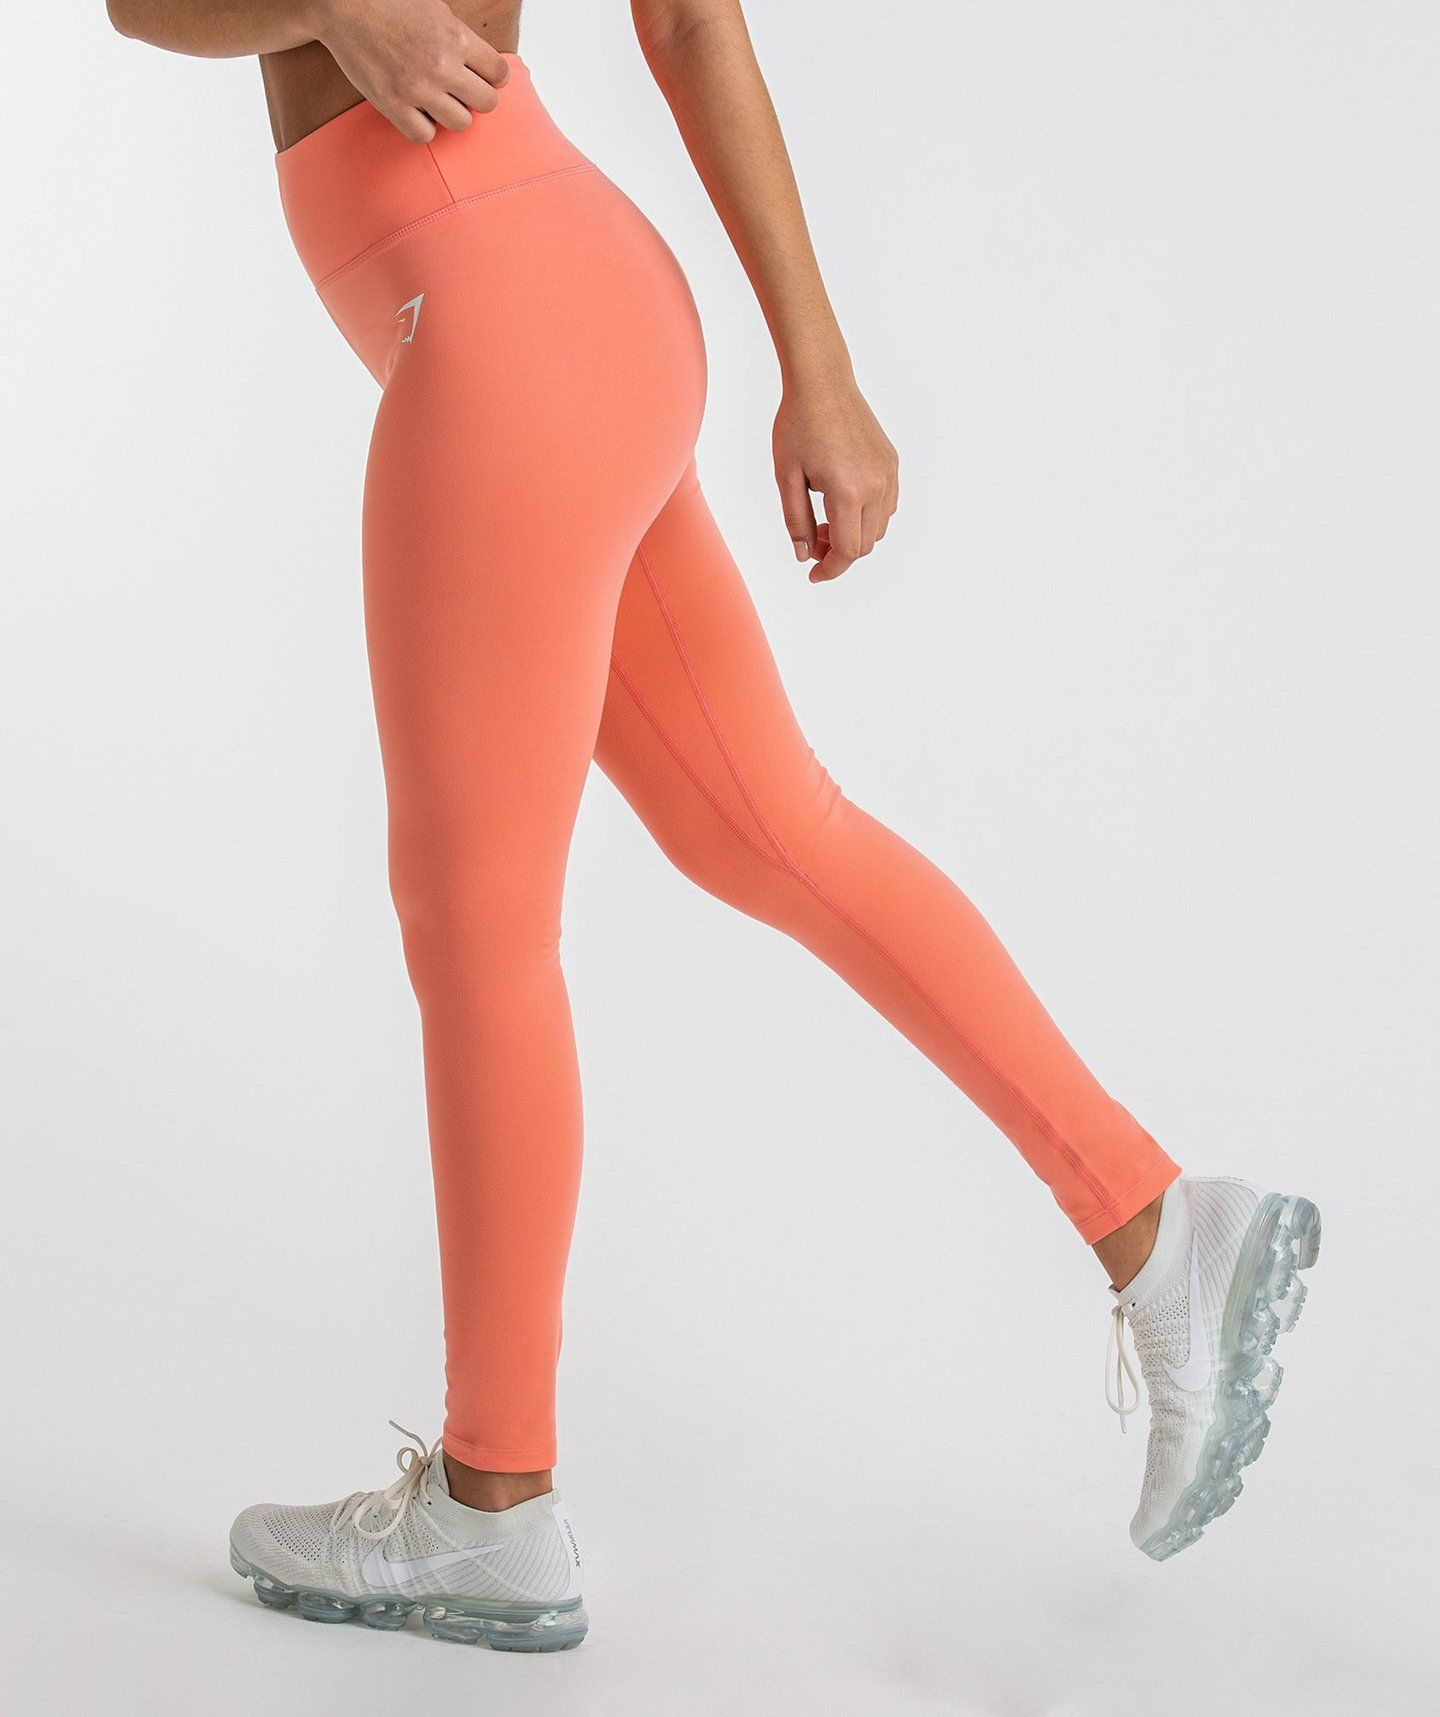 43bb94fafb89f Gymshark Dreamy Leggings - Peach Coral | Gym clothes | Leggings ...